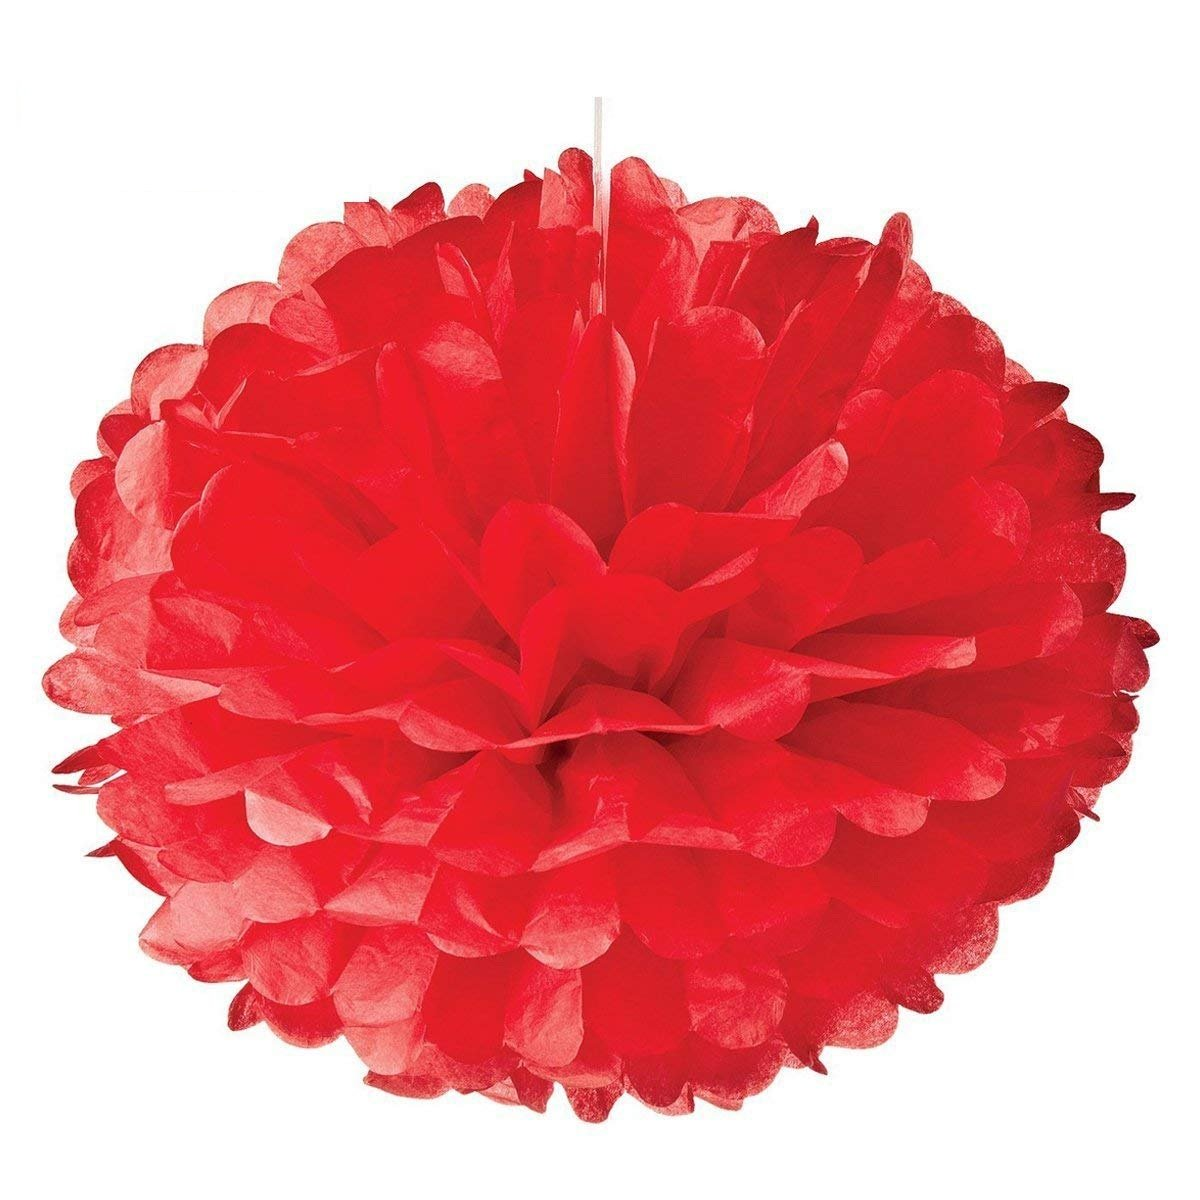 Hmxpls 10pcs Tissue Hanging Paper Pom-poms Flower Ball Wedding Party Outdoor Decoration, Premium Tissue Paper Pom Pom Flowers Craft Kit(Pink)